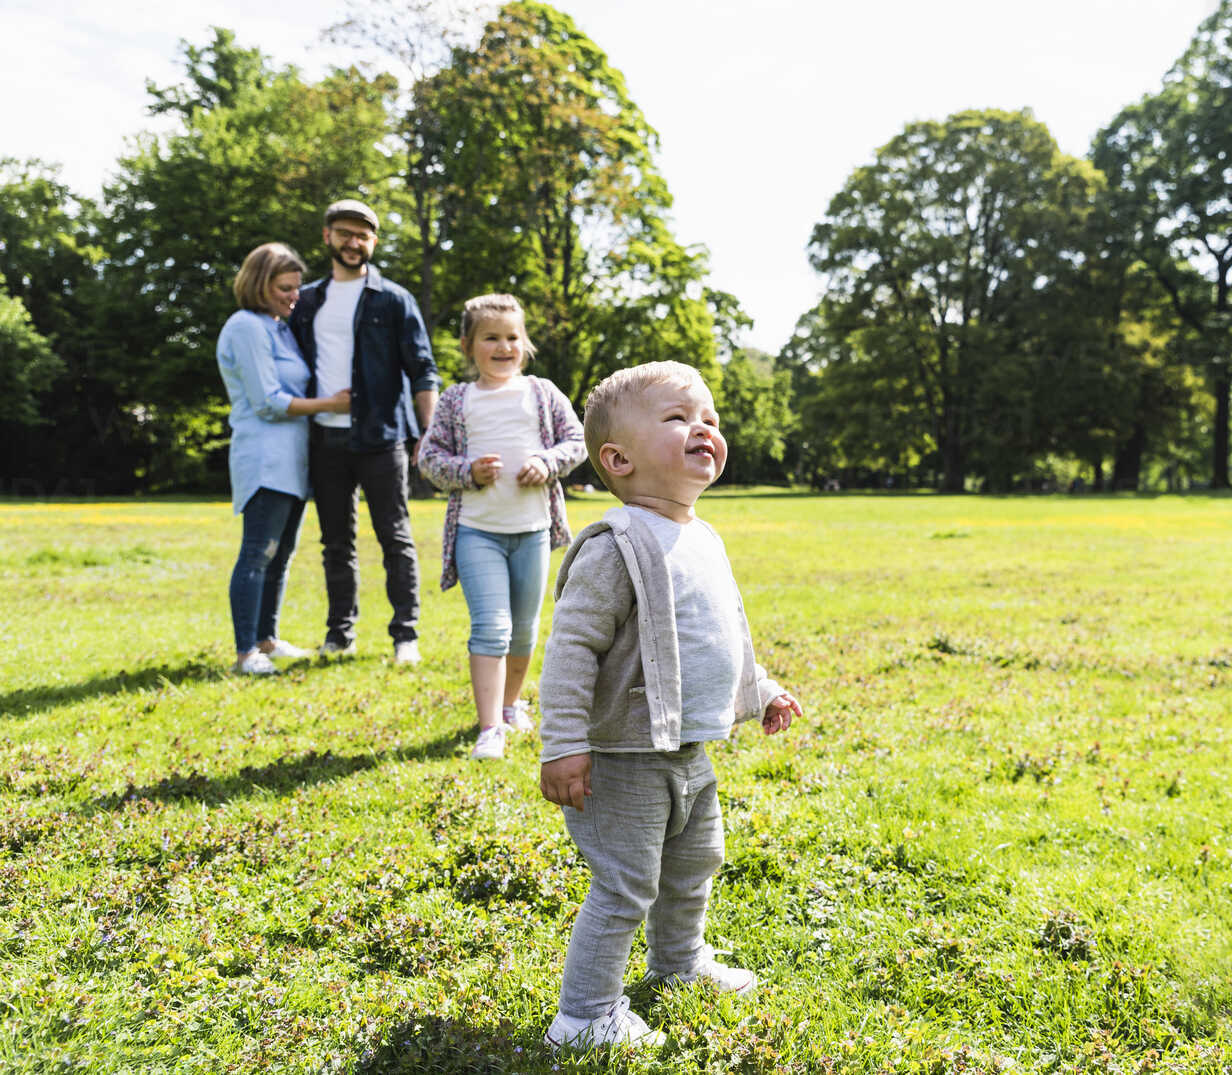 Boy with his family in a park - UUF13808 - Uwe Umstätter/Westend61